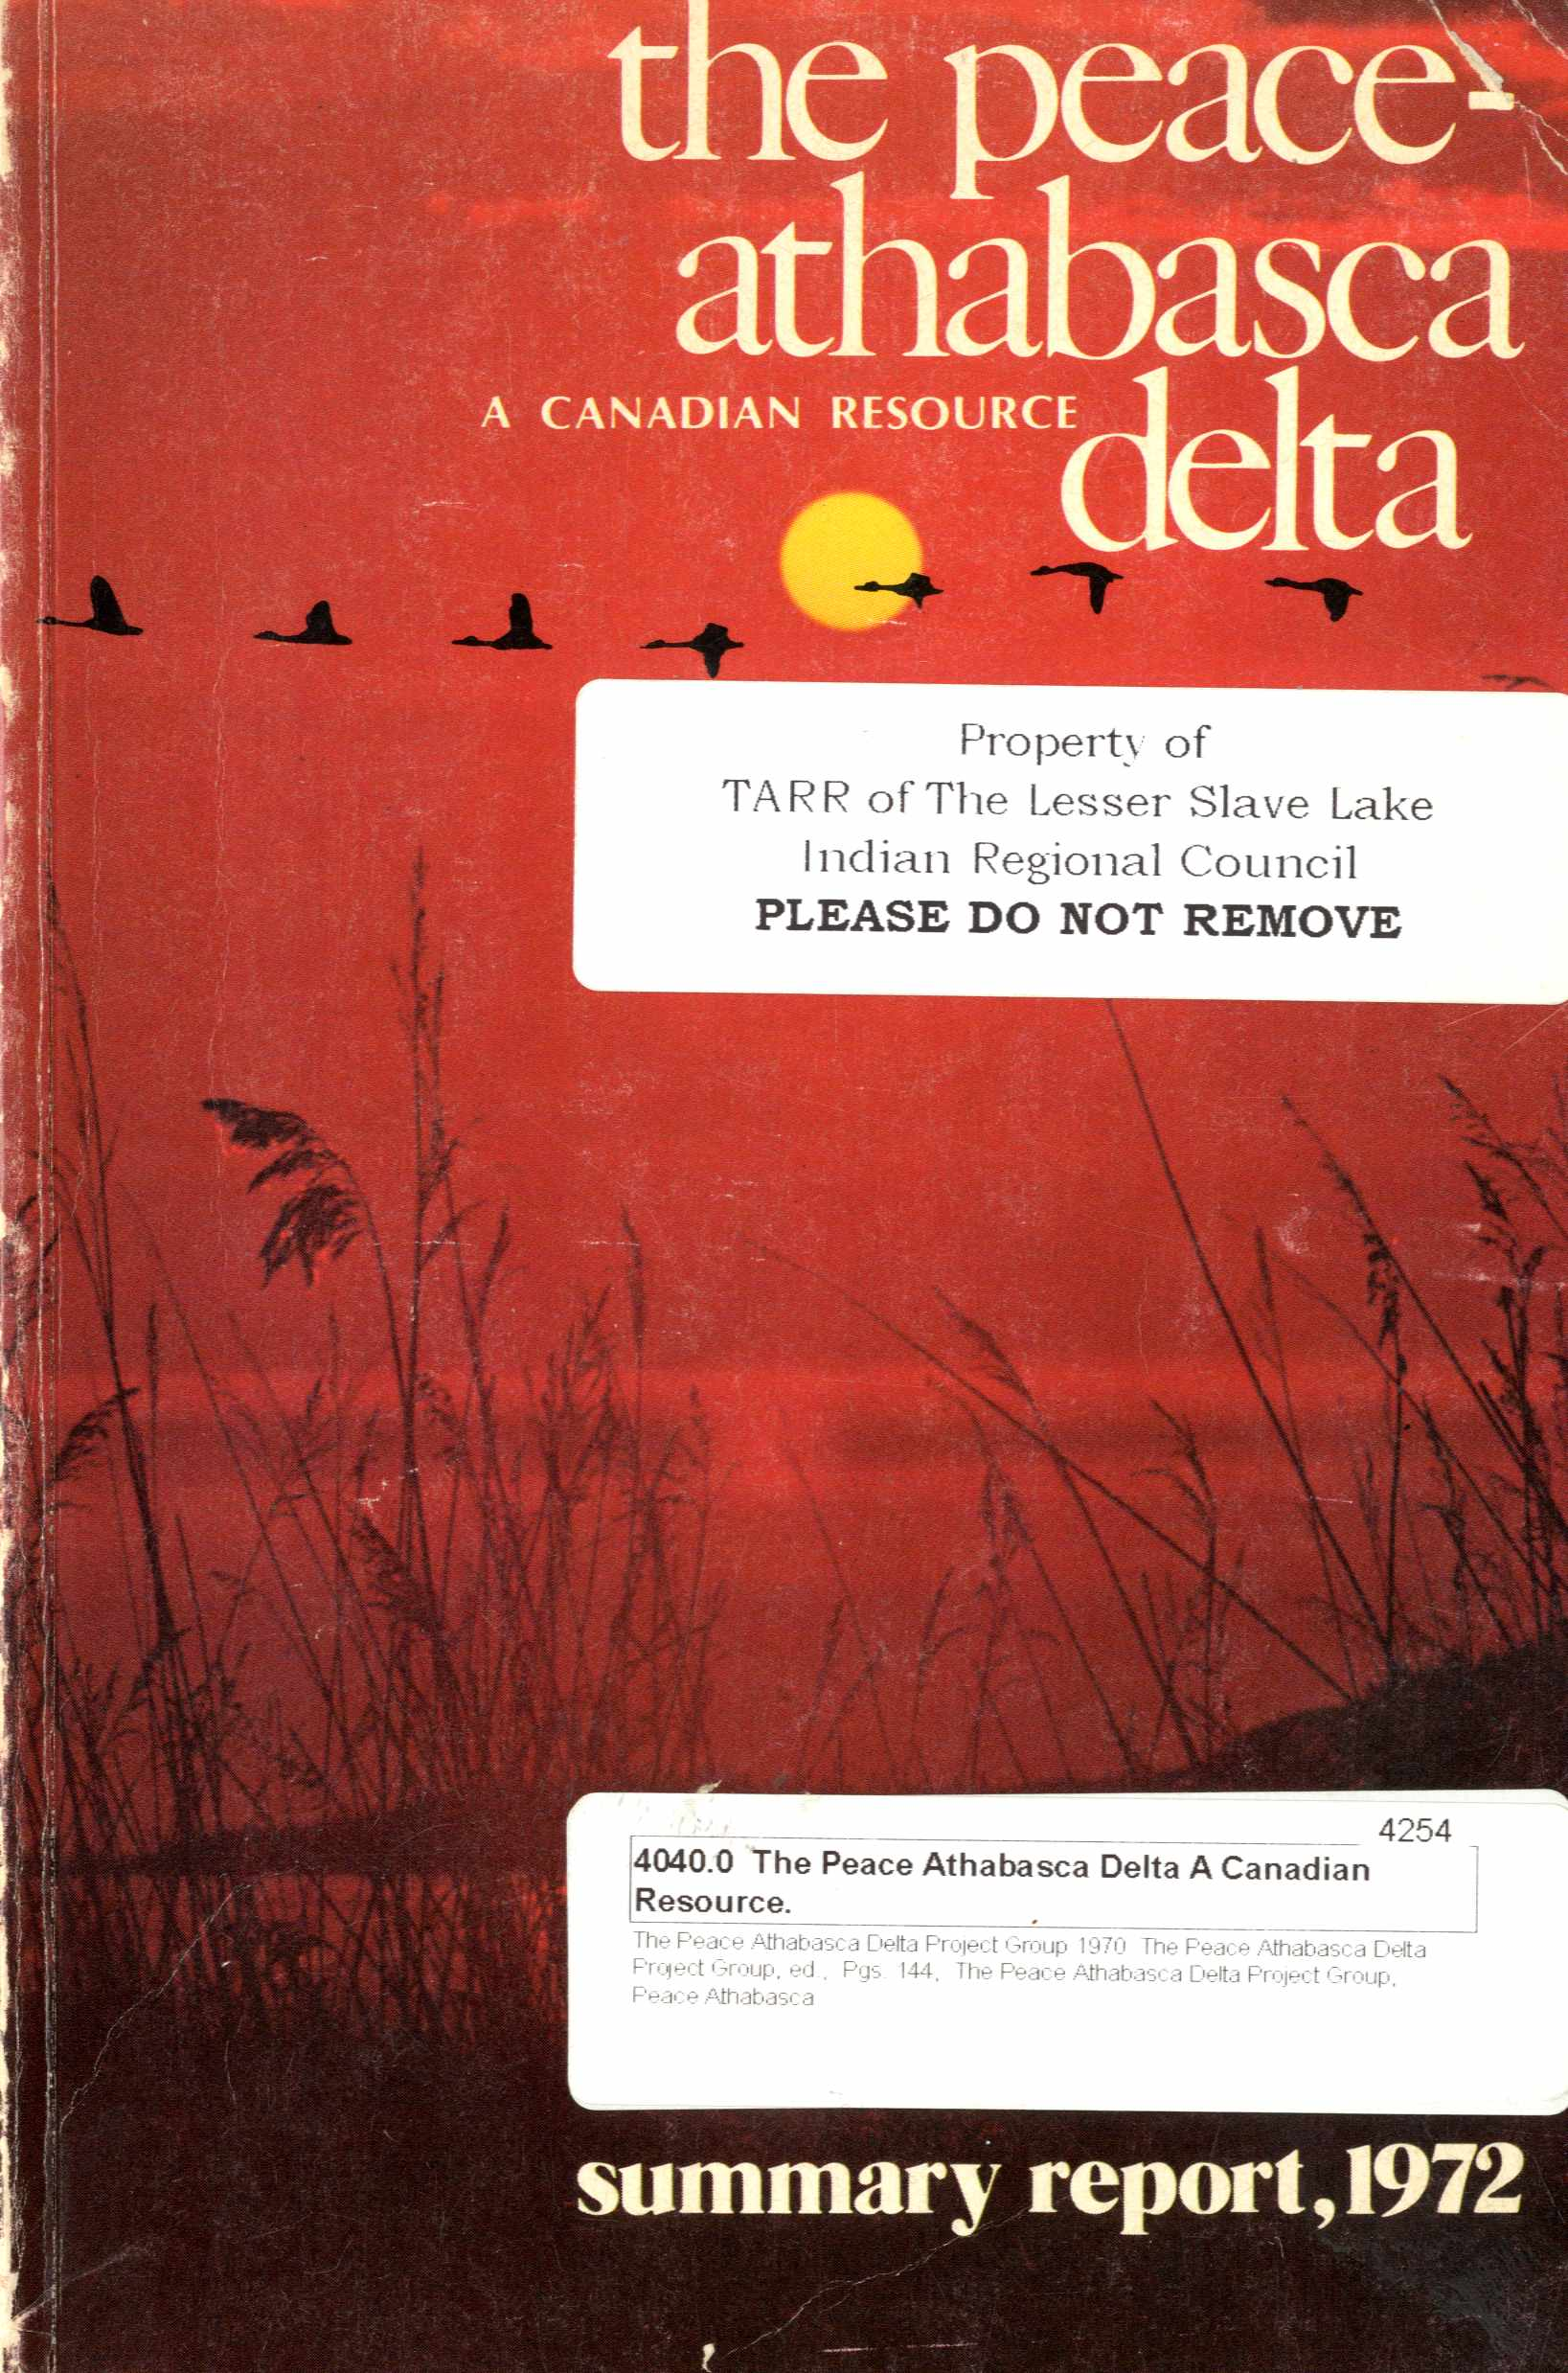 The Peace-Athabasca Delta: A Canadian Resource Image